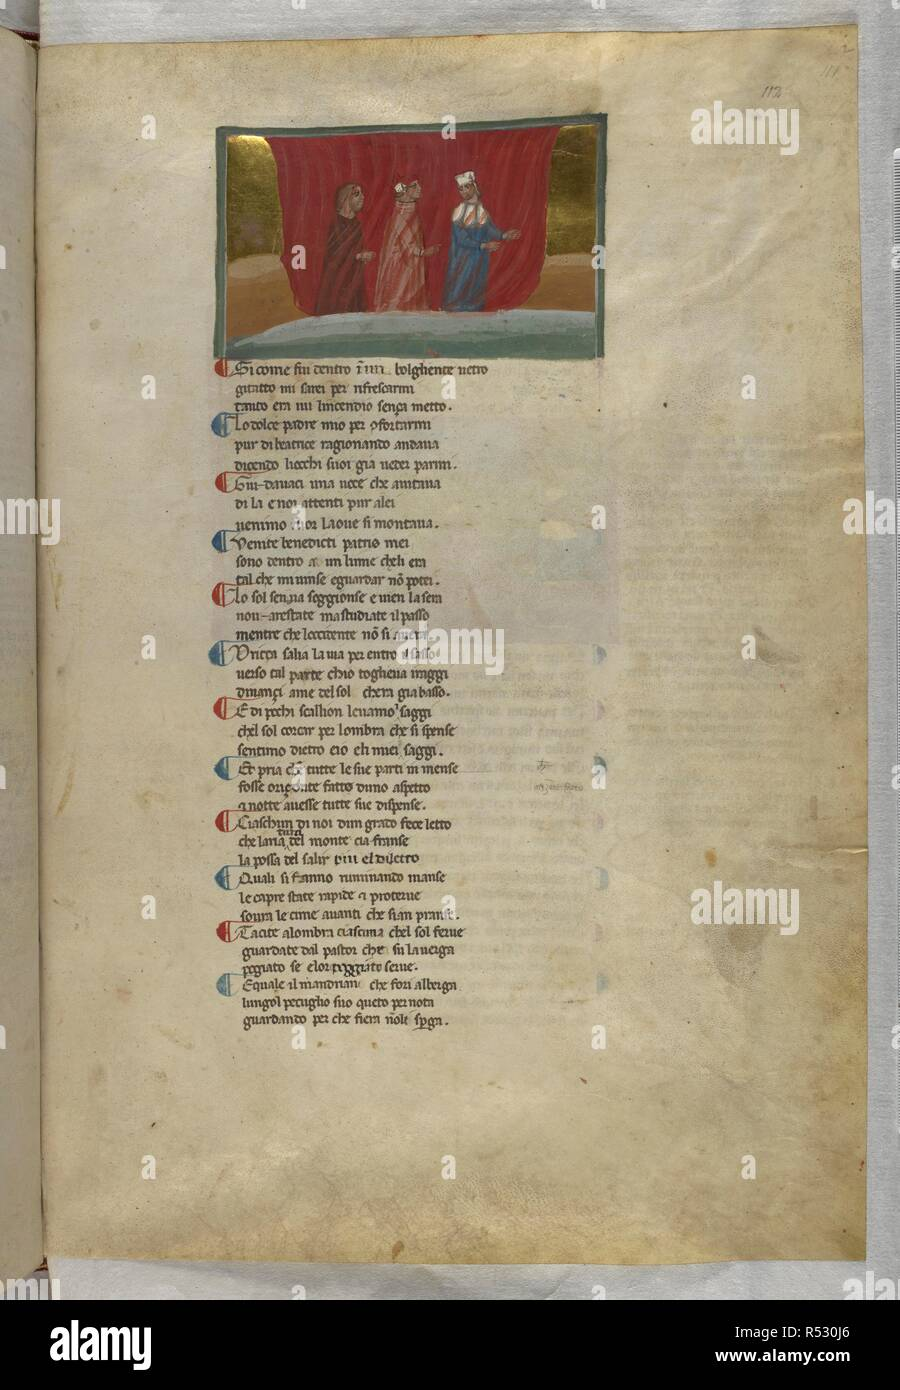 Purgatorio: The three pass through the fire. Dante Alighieri, Divina Commedia ( The Divine Comedy ), with a commentary in Latin. 1st half of the 14th century. Source: Egerton 943, f.112. Language: Italian, Latin. - Stock Image